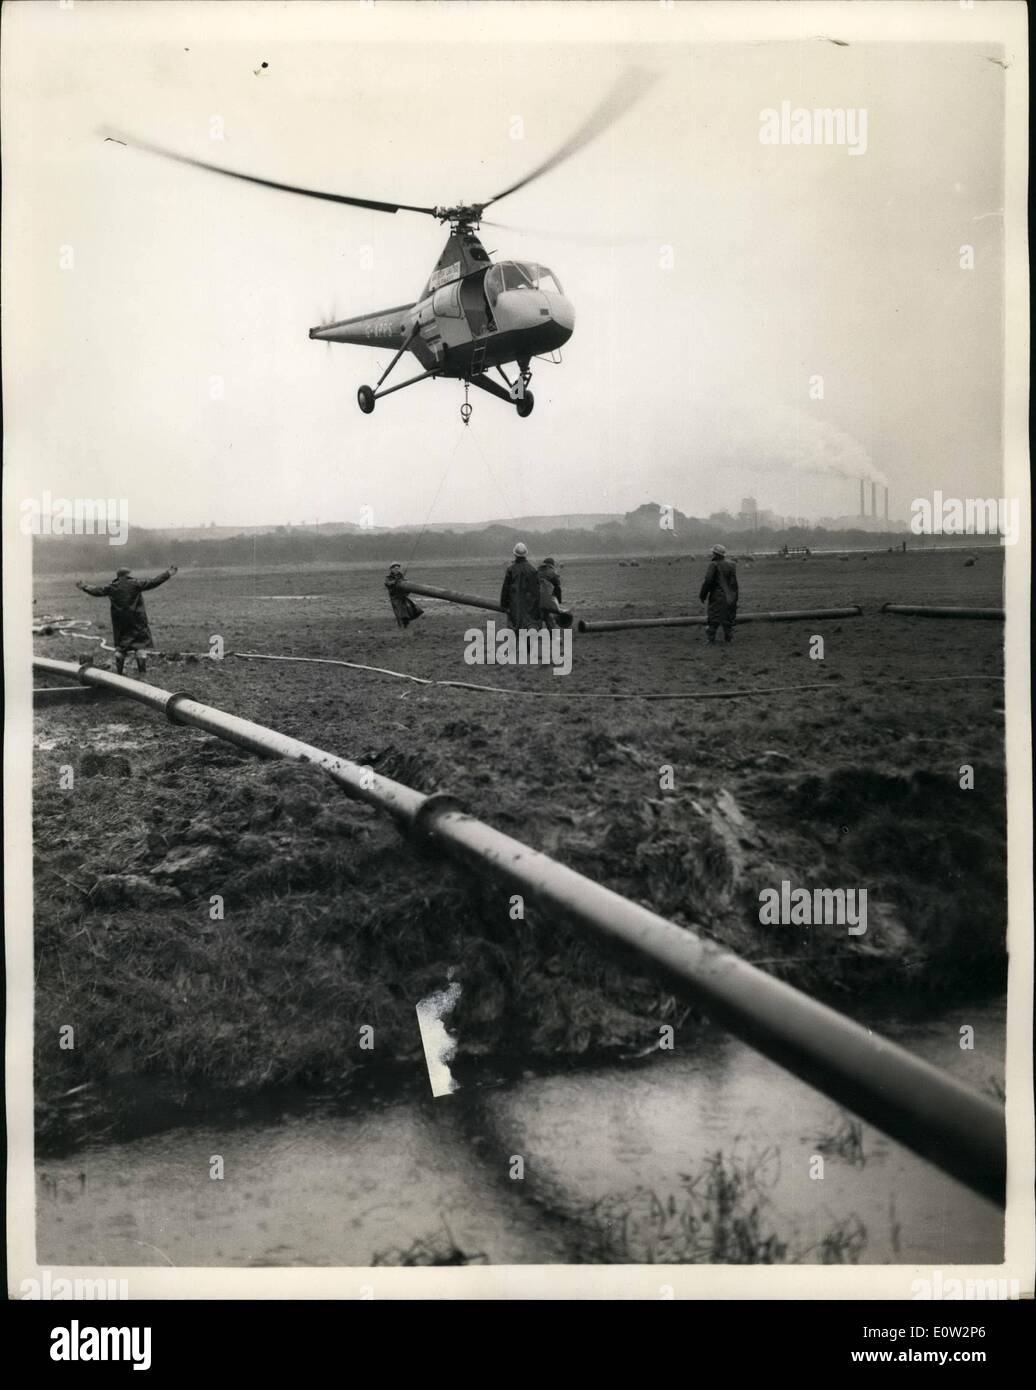 Jan. 01, 1961 - Operation Pipeline. Experiment by Helicopter over the Marshes of Kent.: An experiment was carried out across the Thames marshes at Cliffo, near Gravesond, Kent with the laying of steel pipe-with the aid of a helicopter. Half a mile of 8'' nominal bore stool pipe, made up of 100 flanged lengths - each 20' long and weighing 4 Cwt. The task was carried out by a British United Airways Widgeon - piloted by ex-Navy pilot Mike Perkis. The job - which would normally take ten to fourteen days - was completed today in a matter of hours - Stock Image